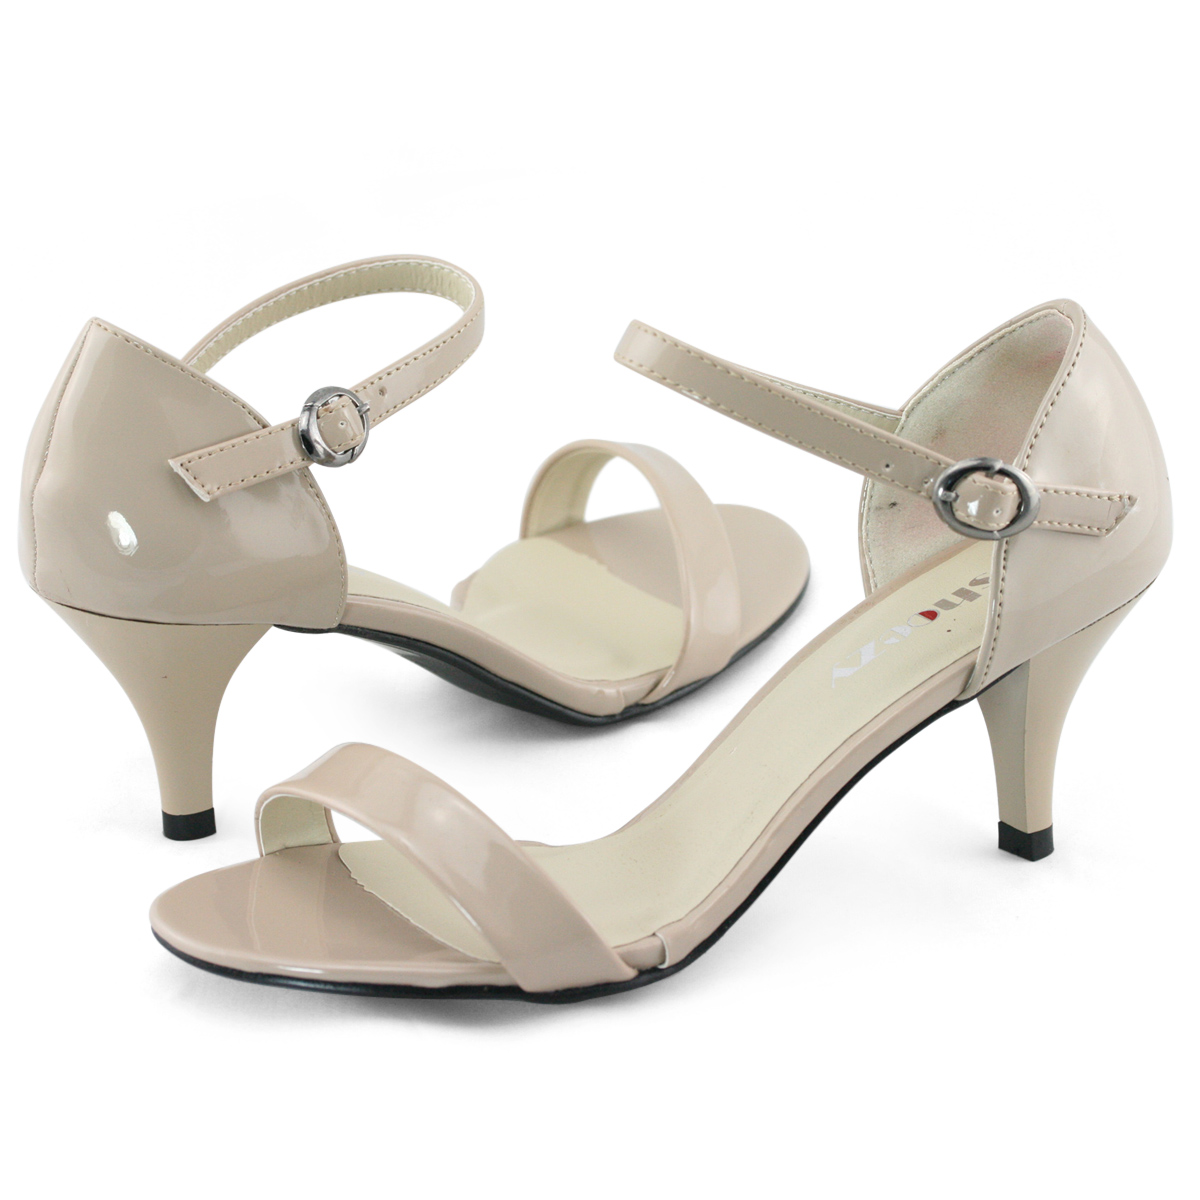 SHOEZY Womens ladies Sexy Kitten Heels patent ankle strappy pumps ...